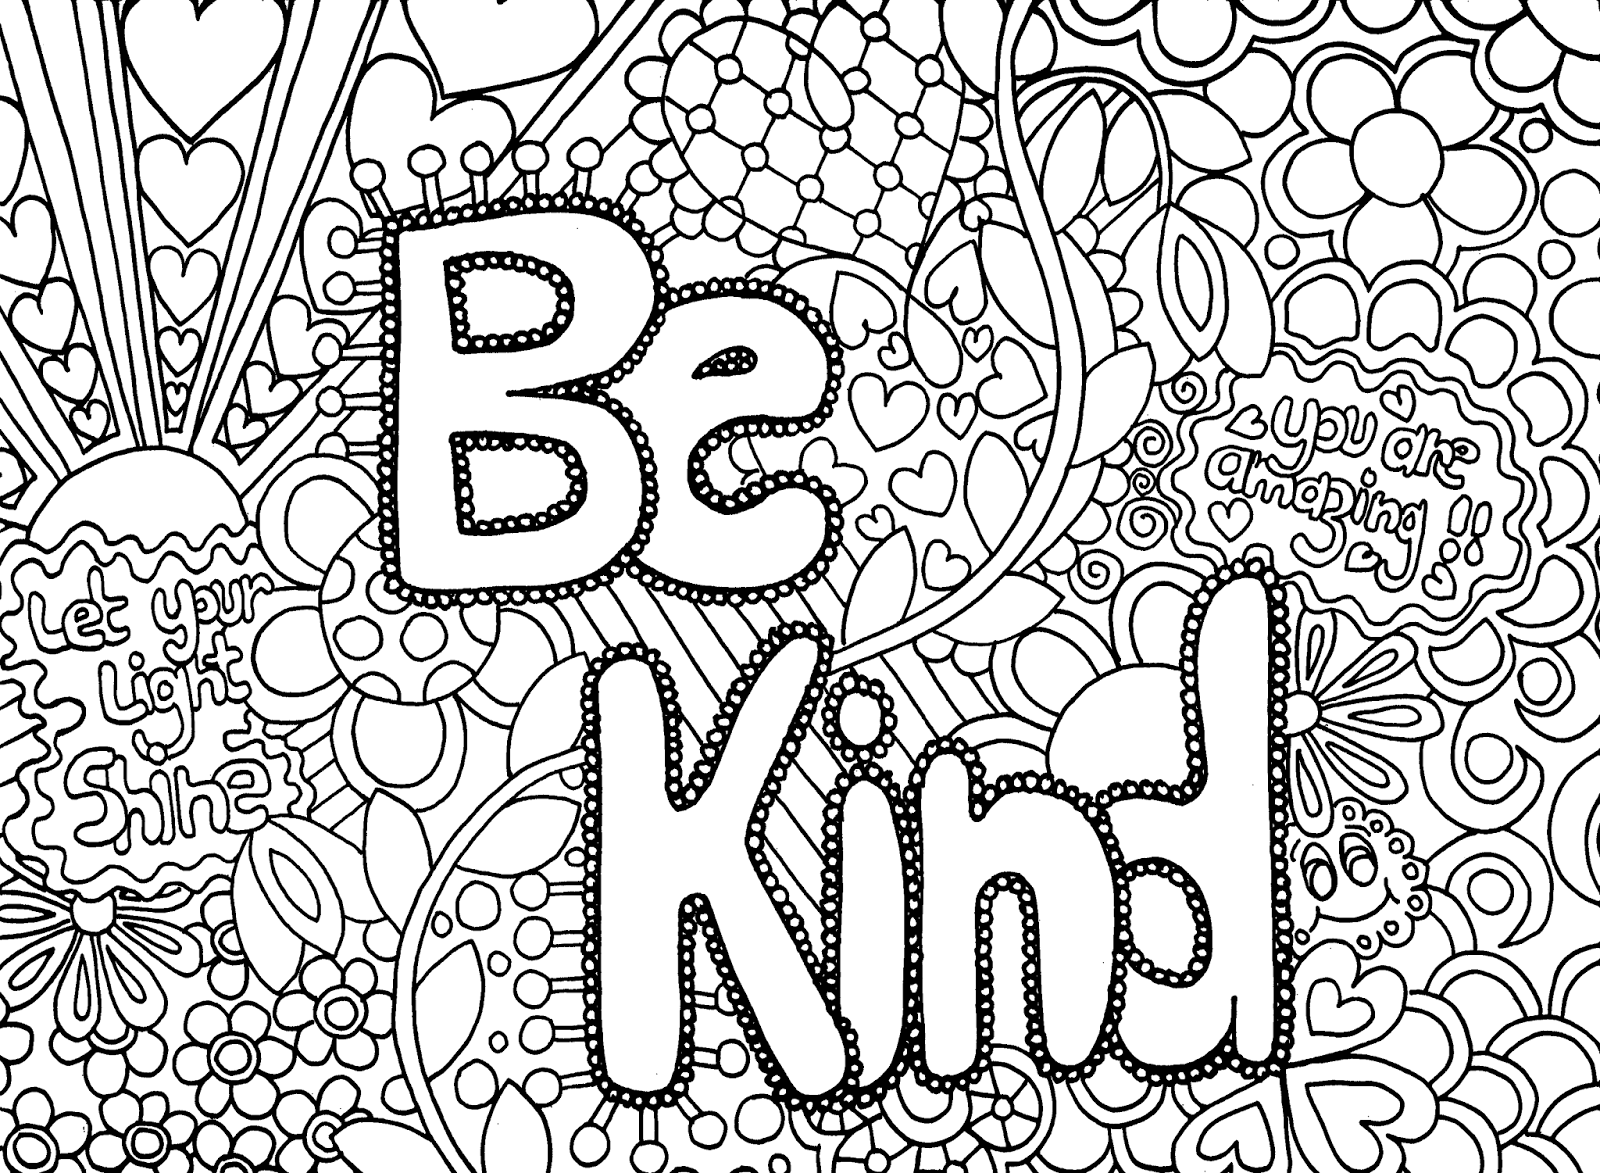 Difficult Coloring Pages Impressive Hard Coloring Pages For Adults  Best Coloring Pages For Kids